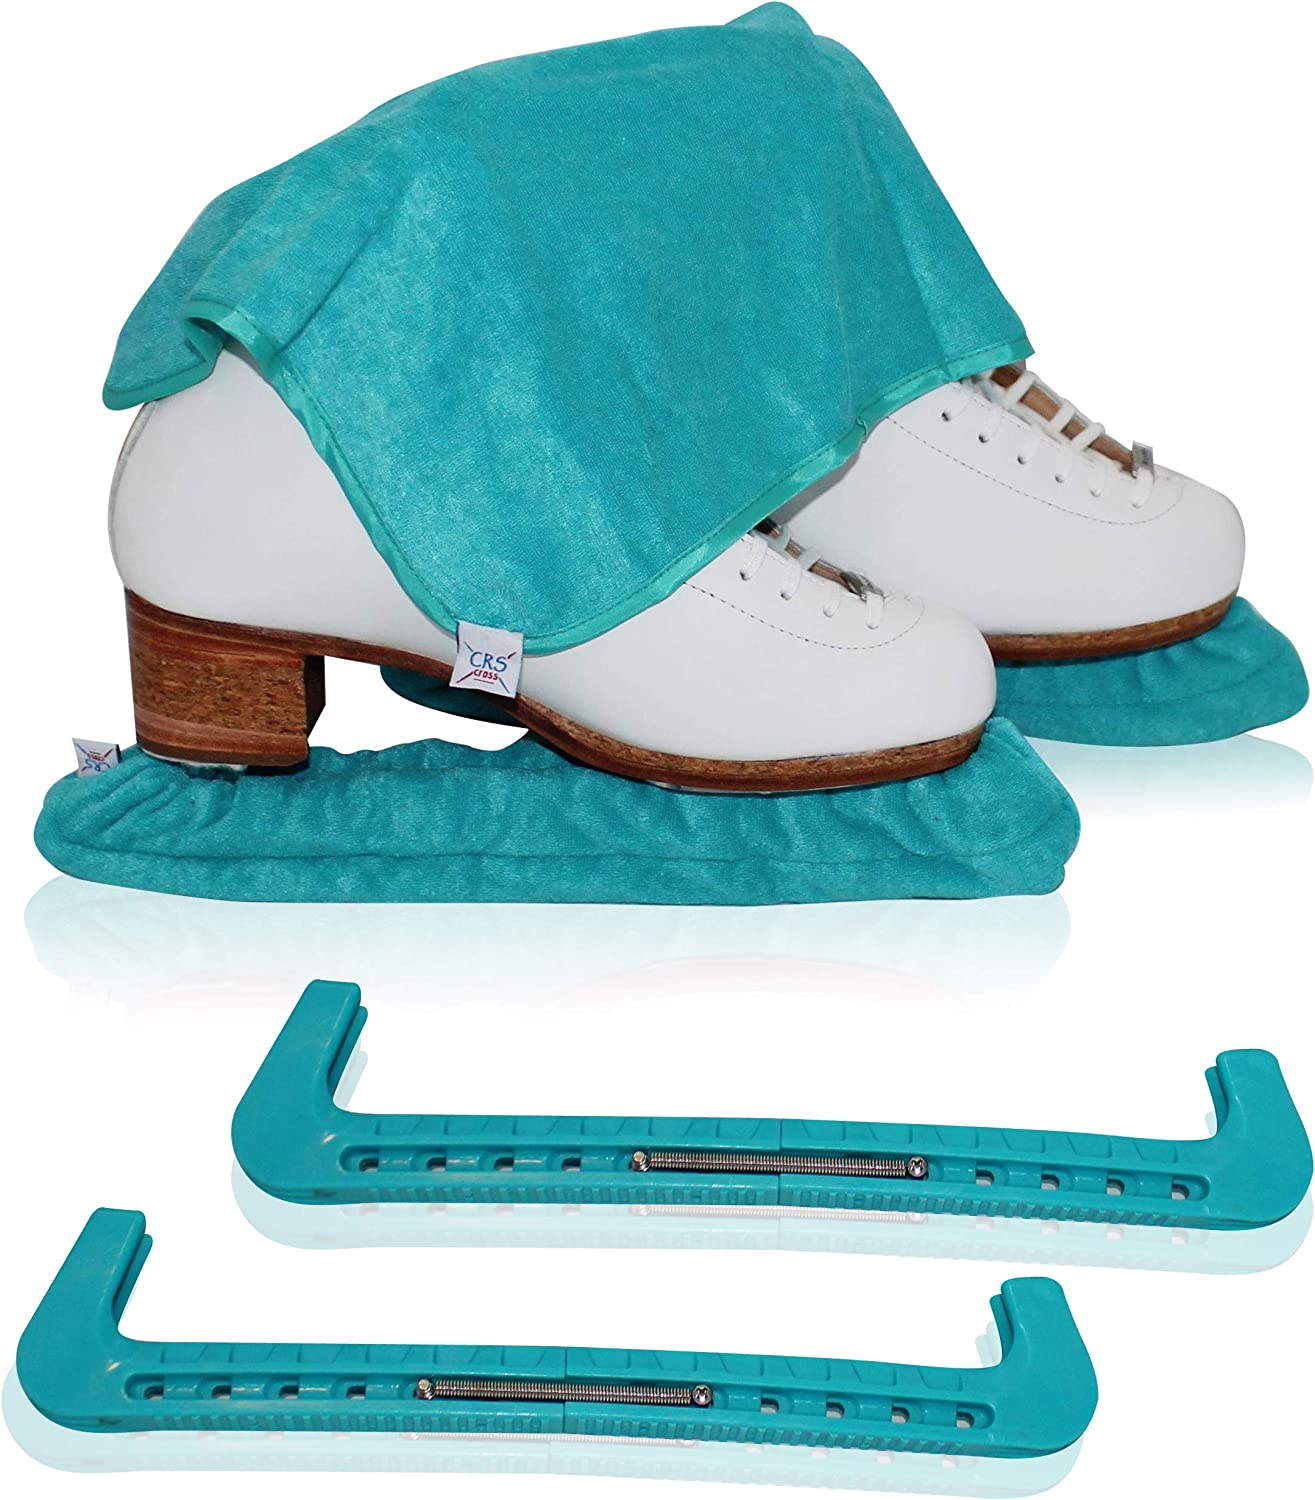 CRS Cross Skate Guards, Soakers & Towel Gift Set - Ice Skating Guards and Soft Skate Blade Covers for Figure Skating or Hockey : Sports & Outdoors